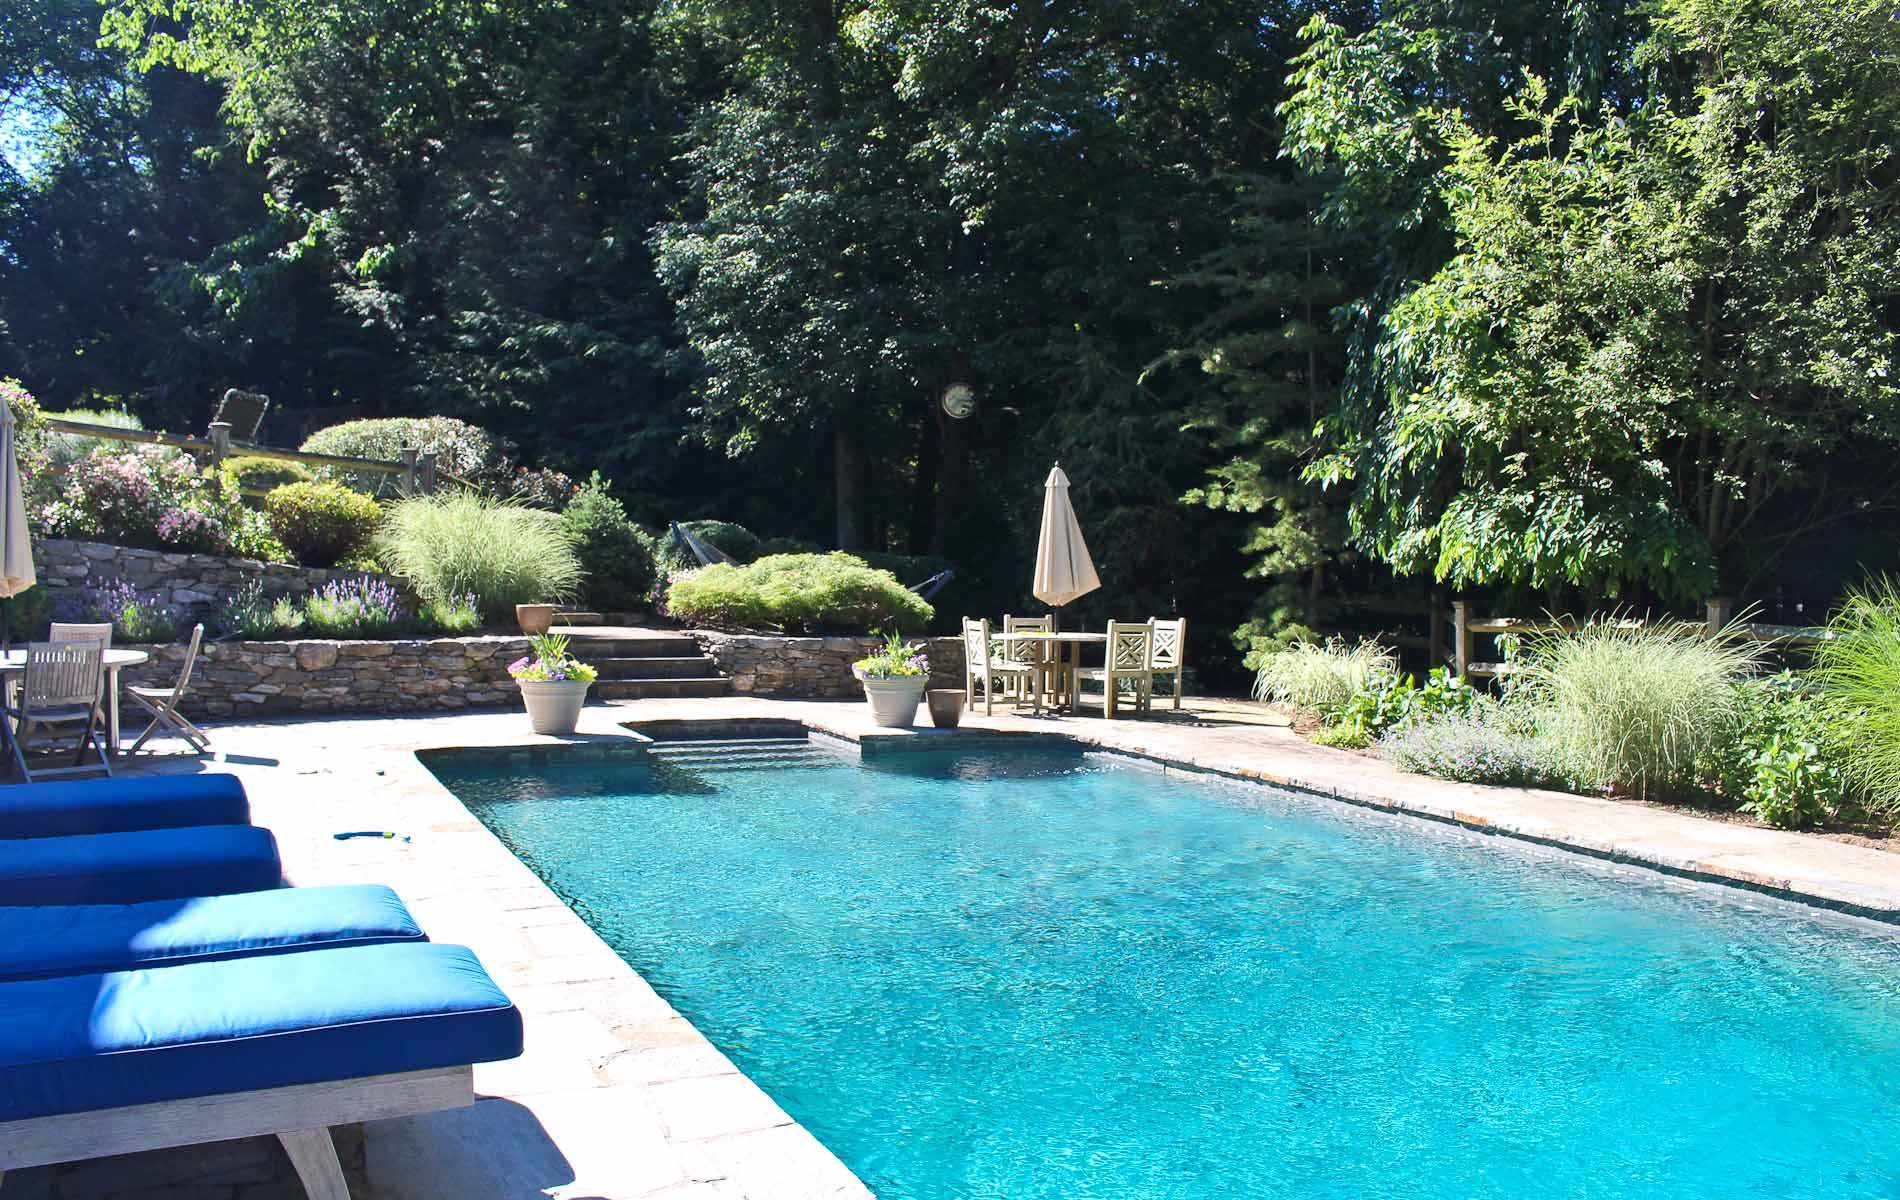 Homes with swimming pool for sale in new fairfield ct for Houses for sale pool